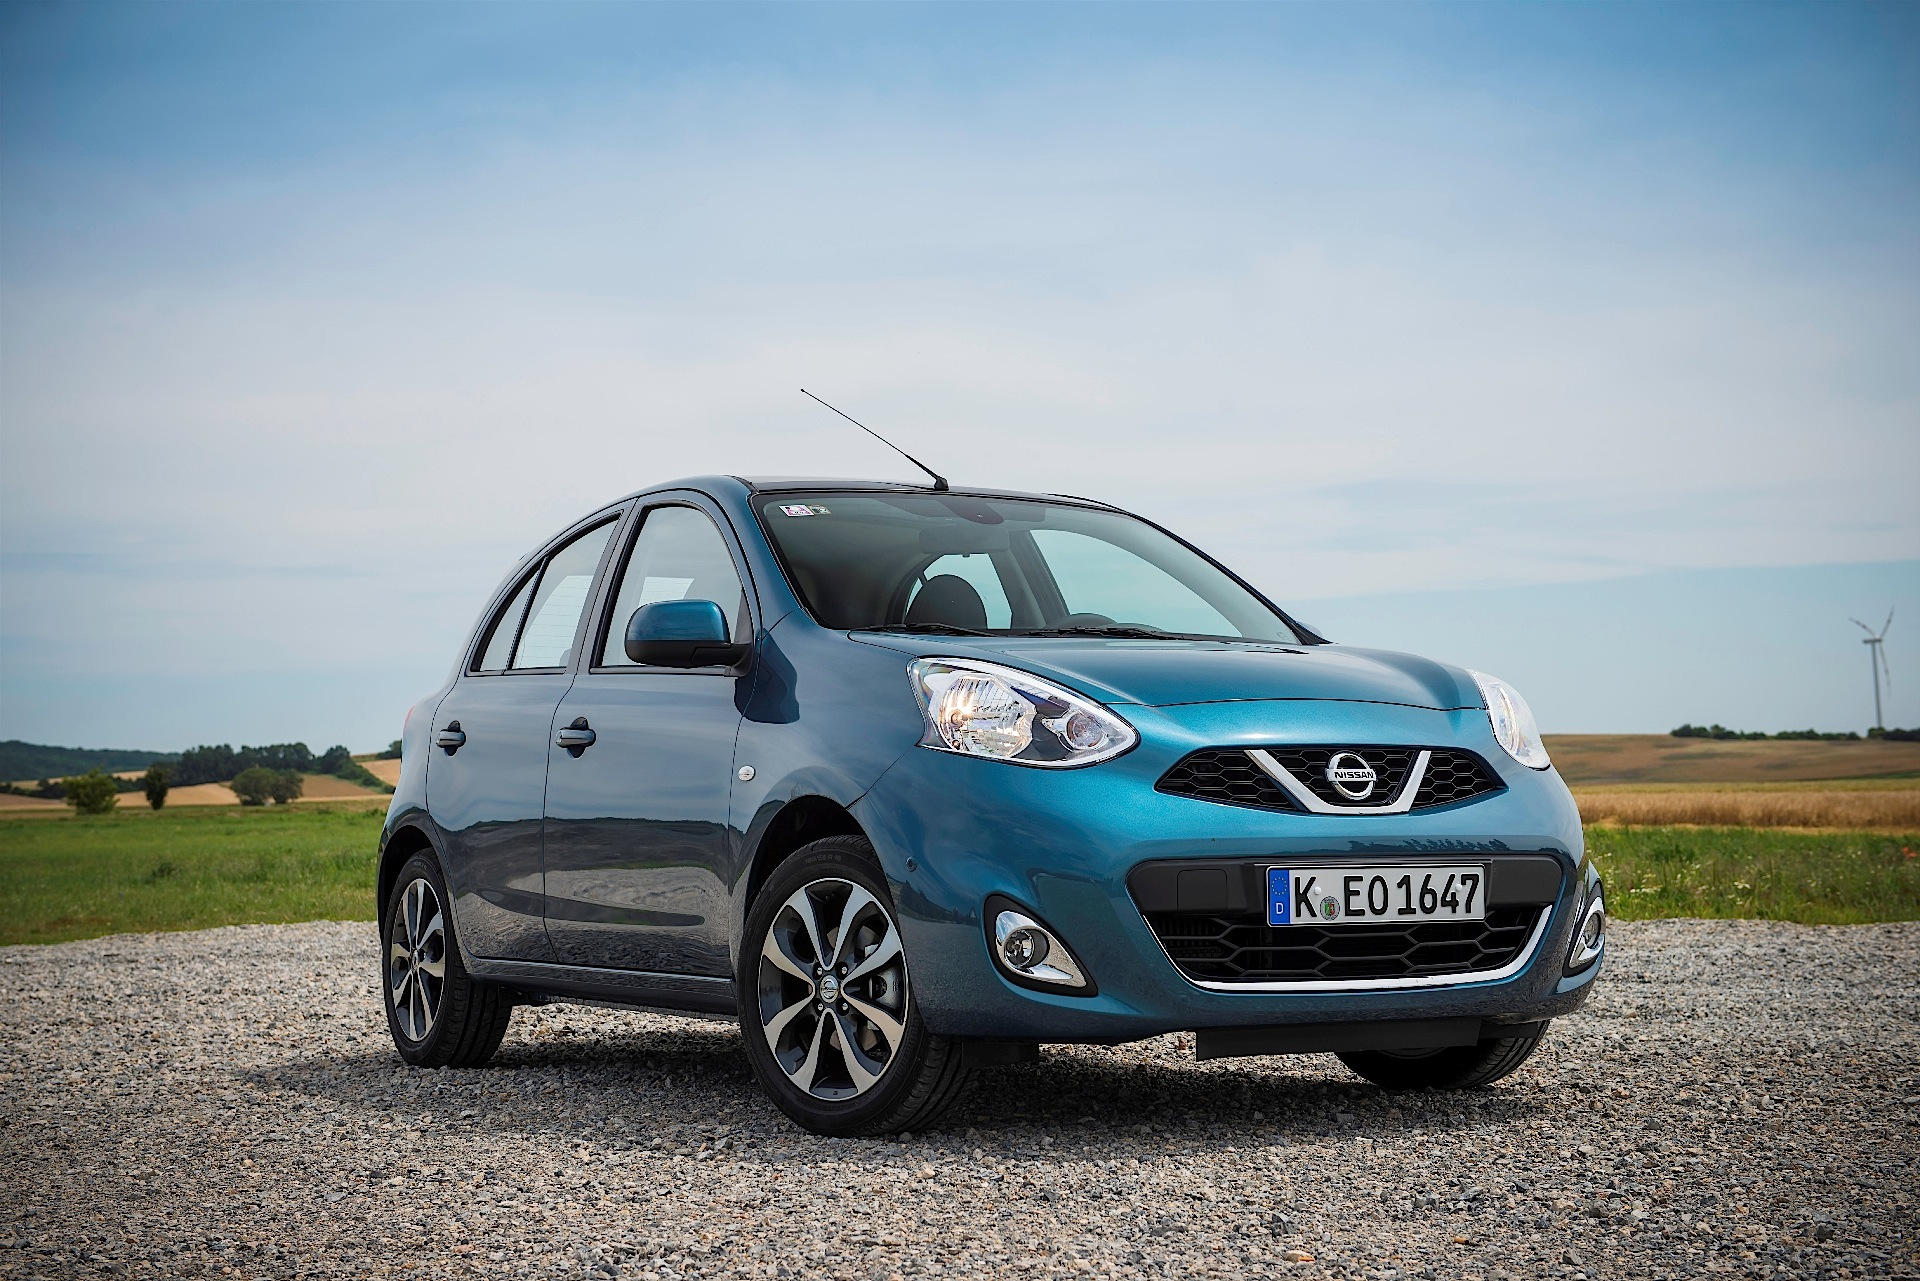 nissan micra specs 2013 2014 2015 2016 2017 autoevolution. Black Bedroom Furniture Sets. Home Design Ideas